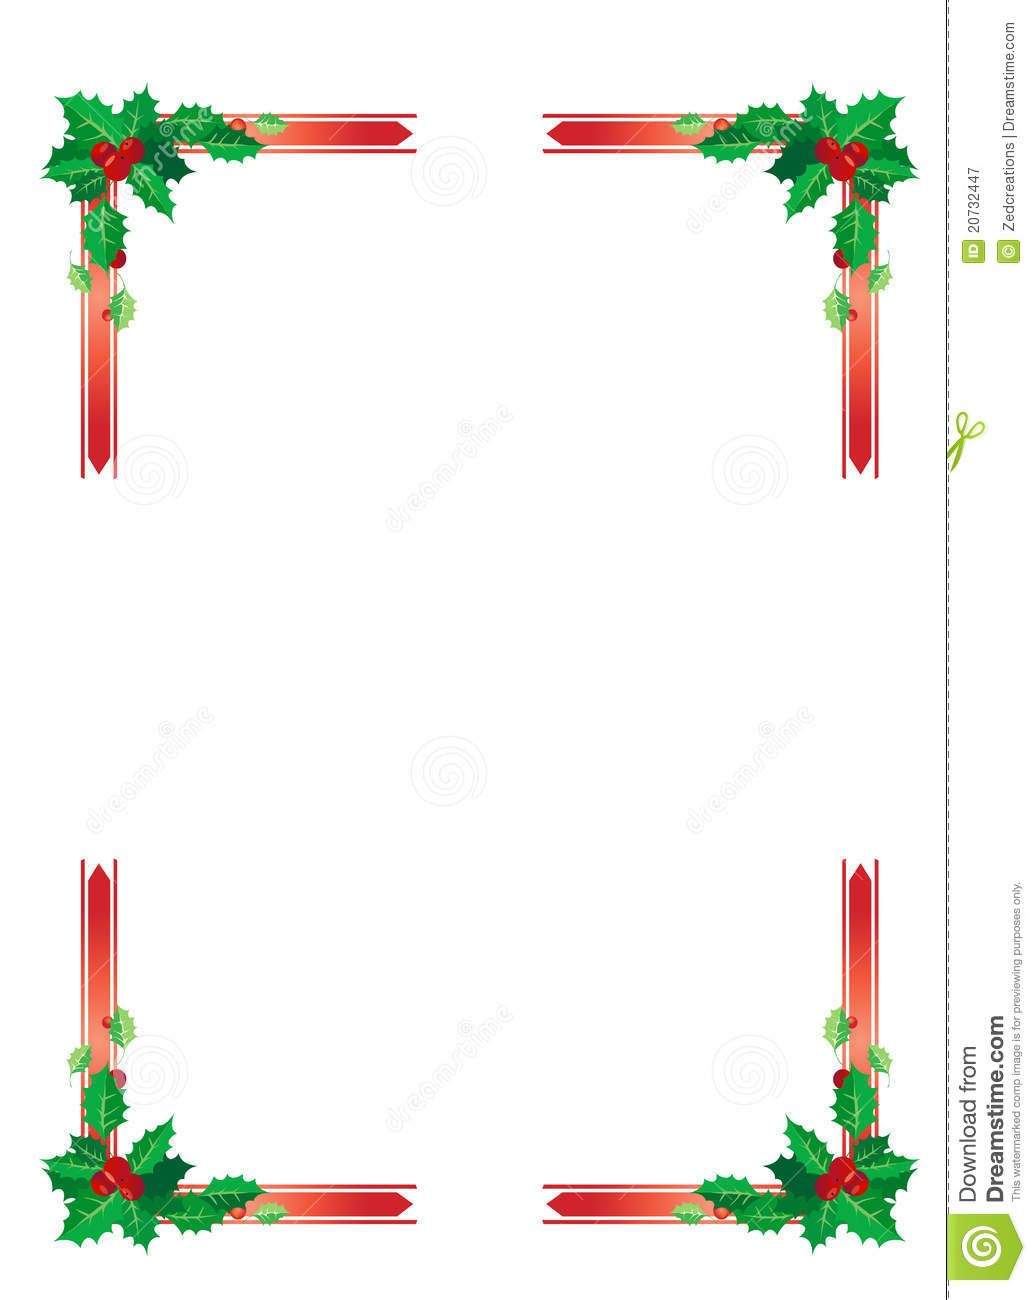 christmas-border-20732447.jpg (1036×1300) | Backgrounds, borders and ...